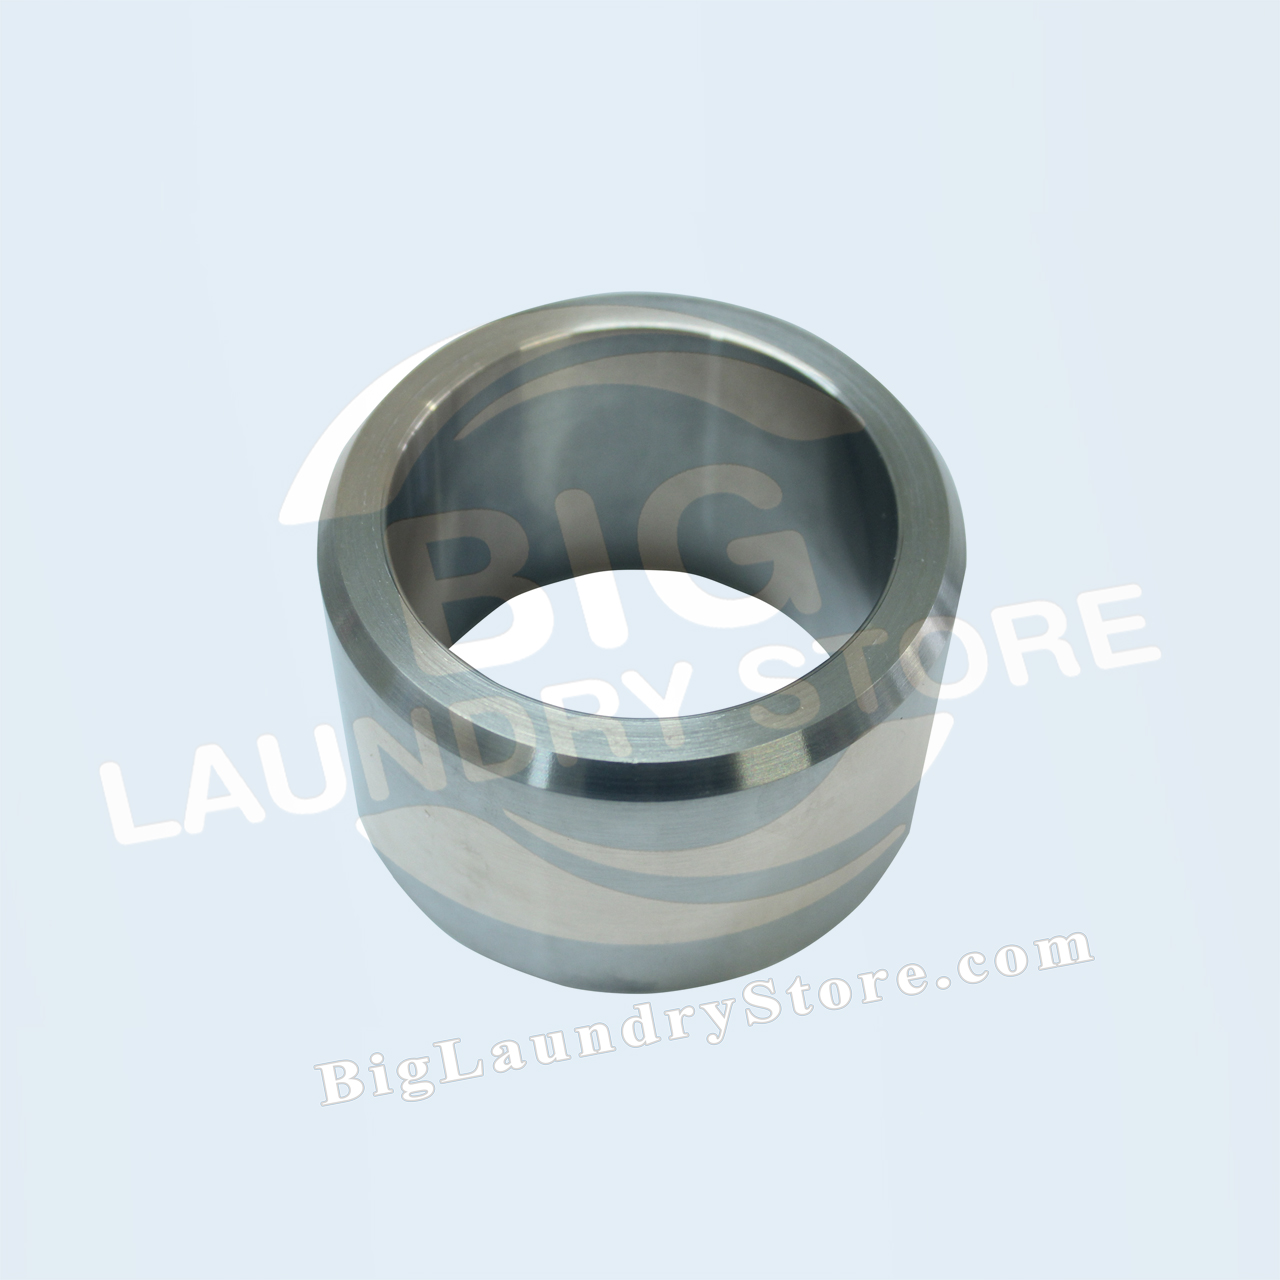 Sleeve Stainless Steel Shaft Bushing for 35lbs. Washer - Huebsch, Speed Queen or Unimac # F8312003P